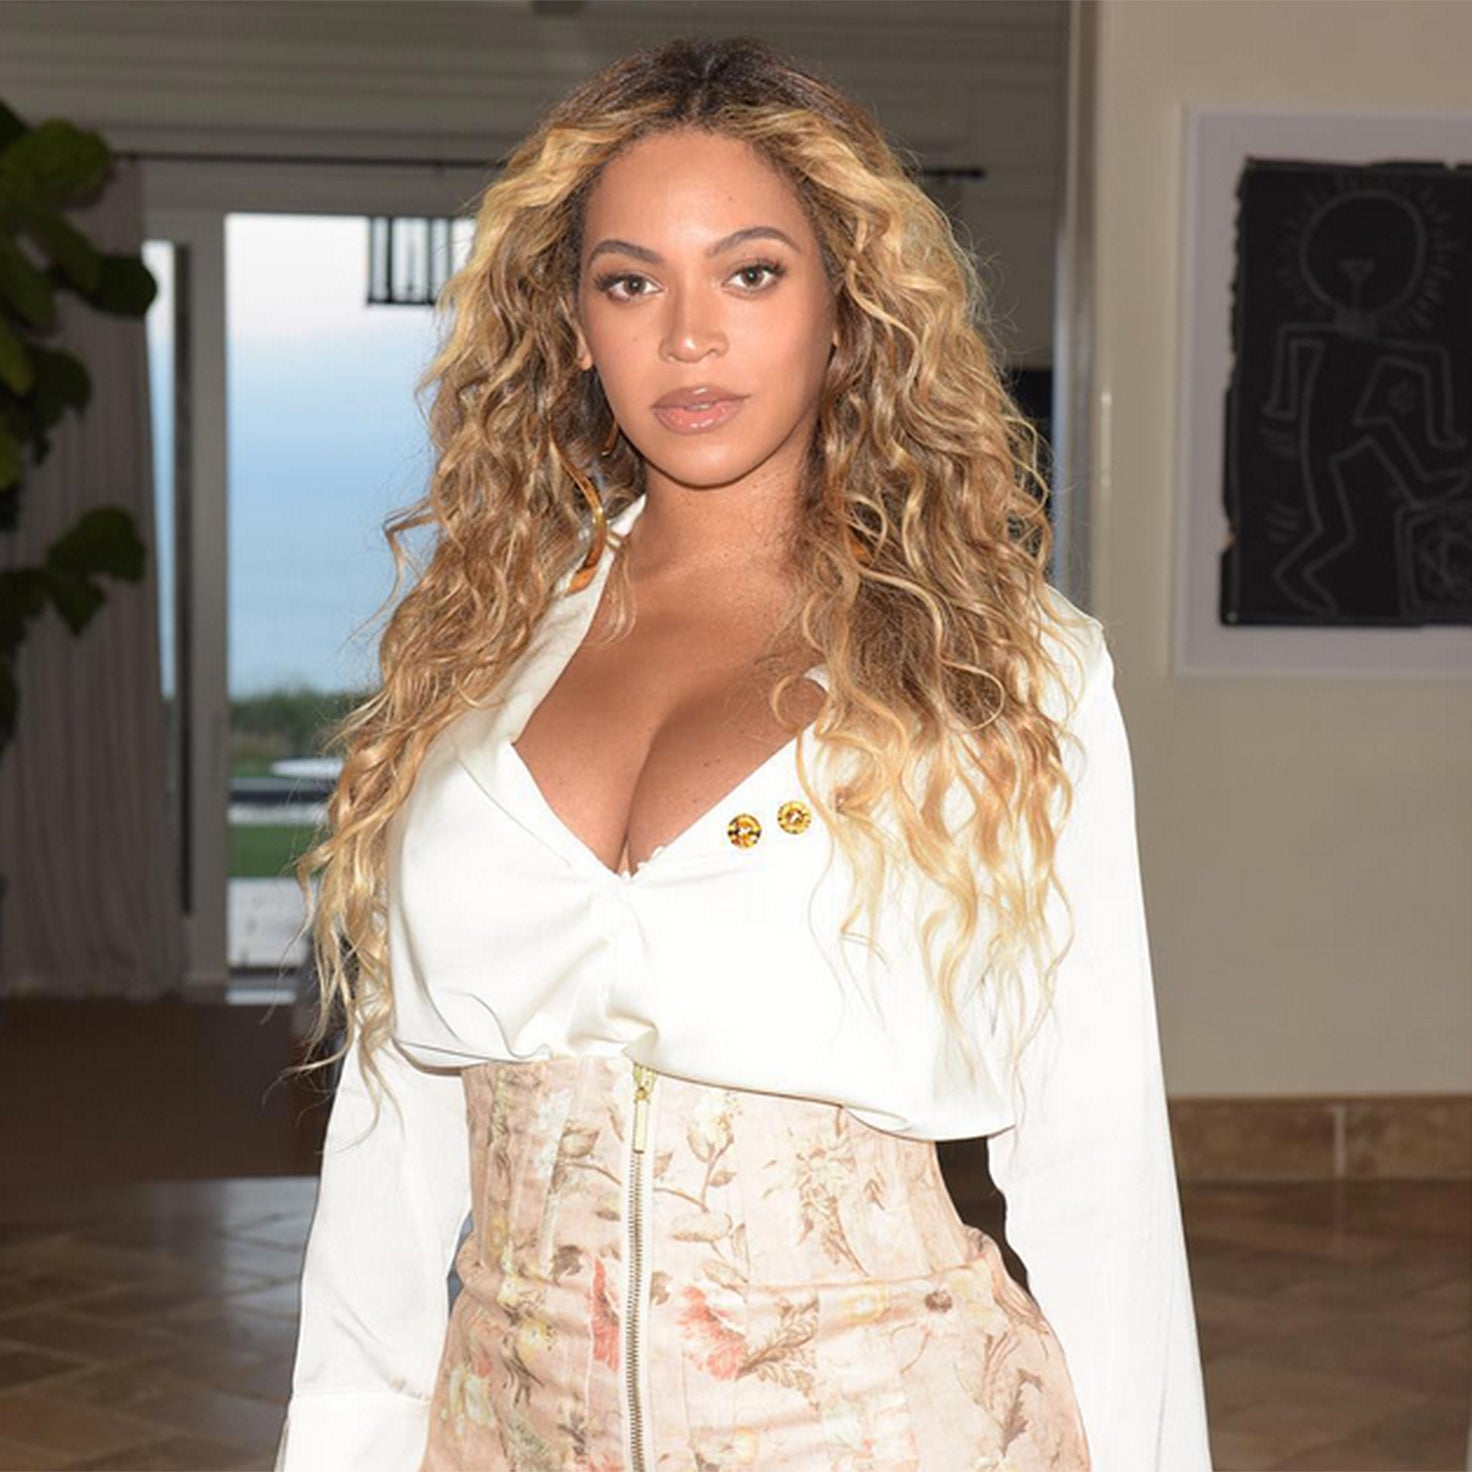 Mom Of 3 Beyoncé Steps Out In Curve-Hugging Mini One Month After Welcoming Twins